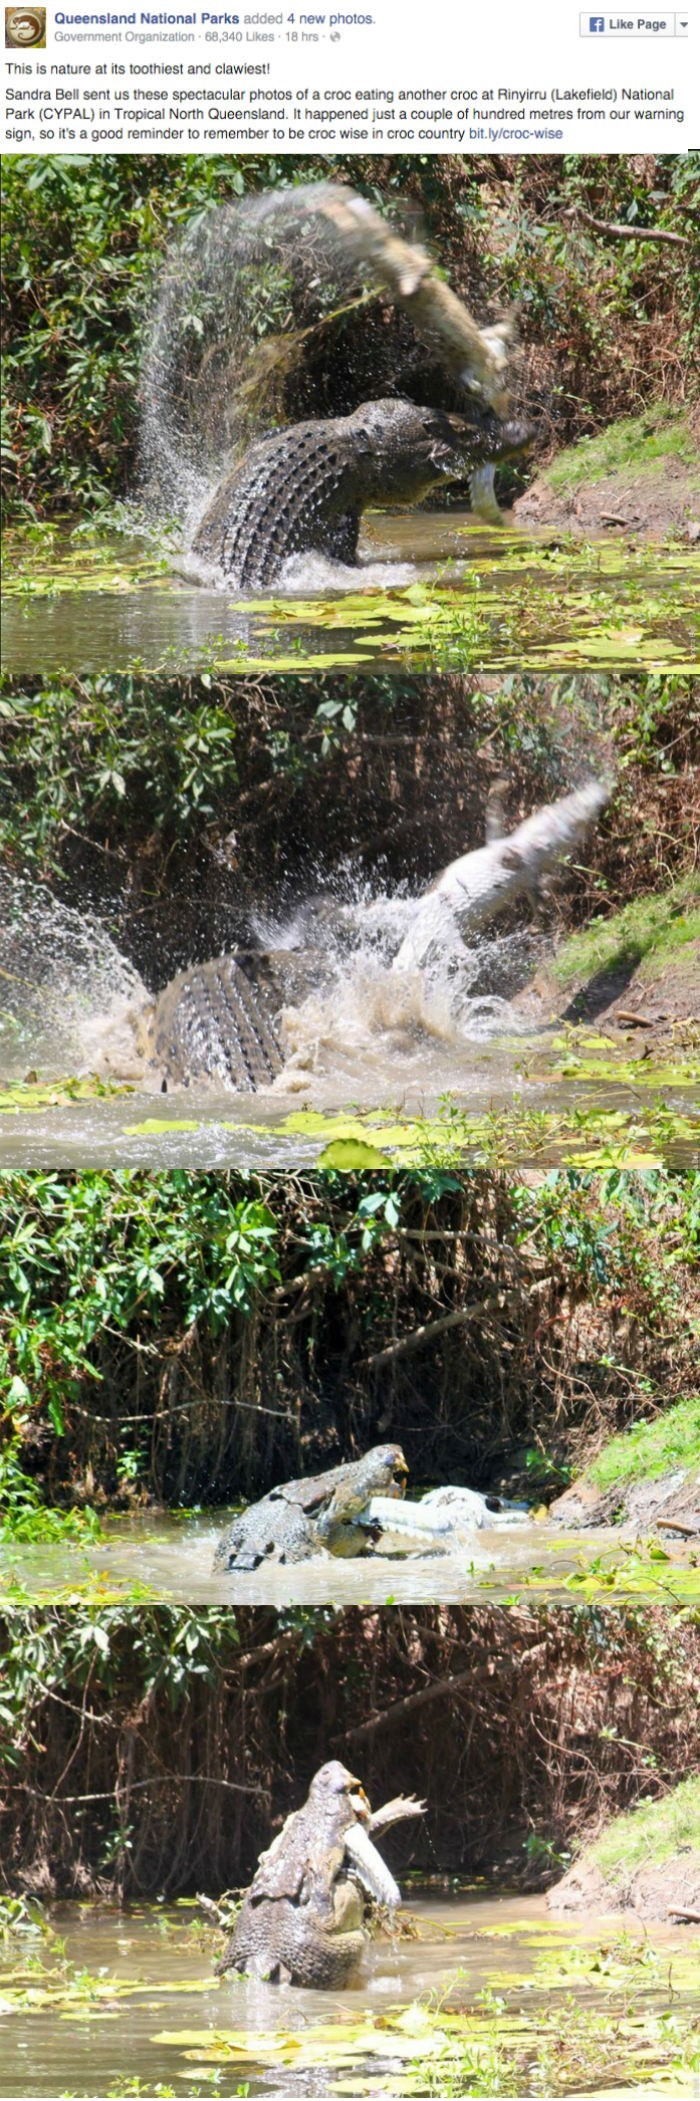 facebook Queensland National Parks posts crocodile fighting another corcodile